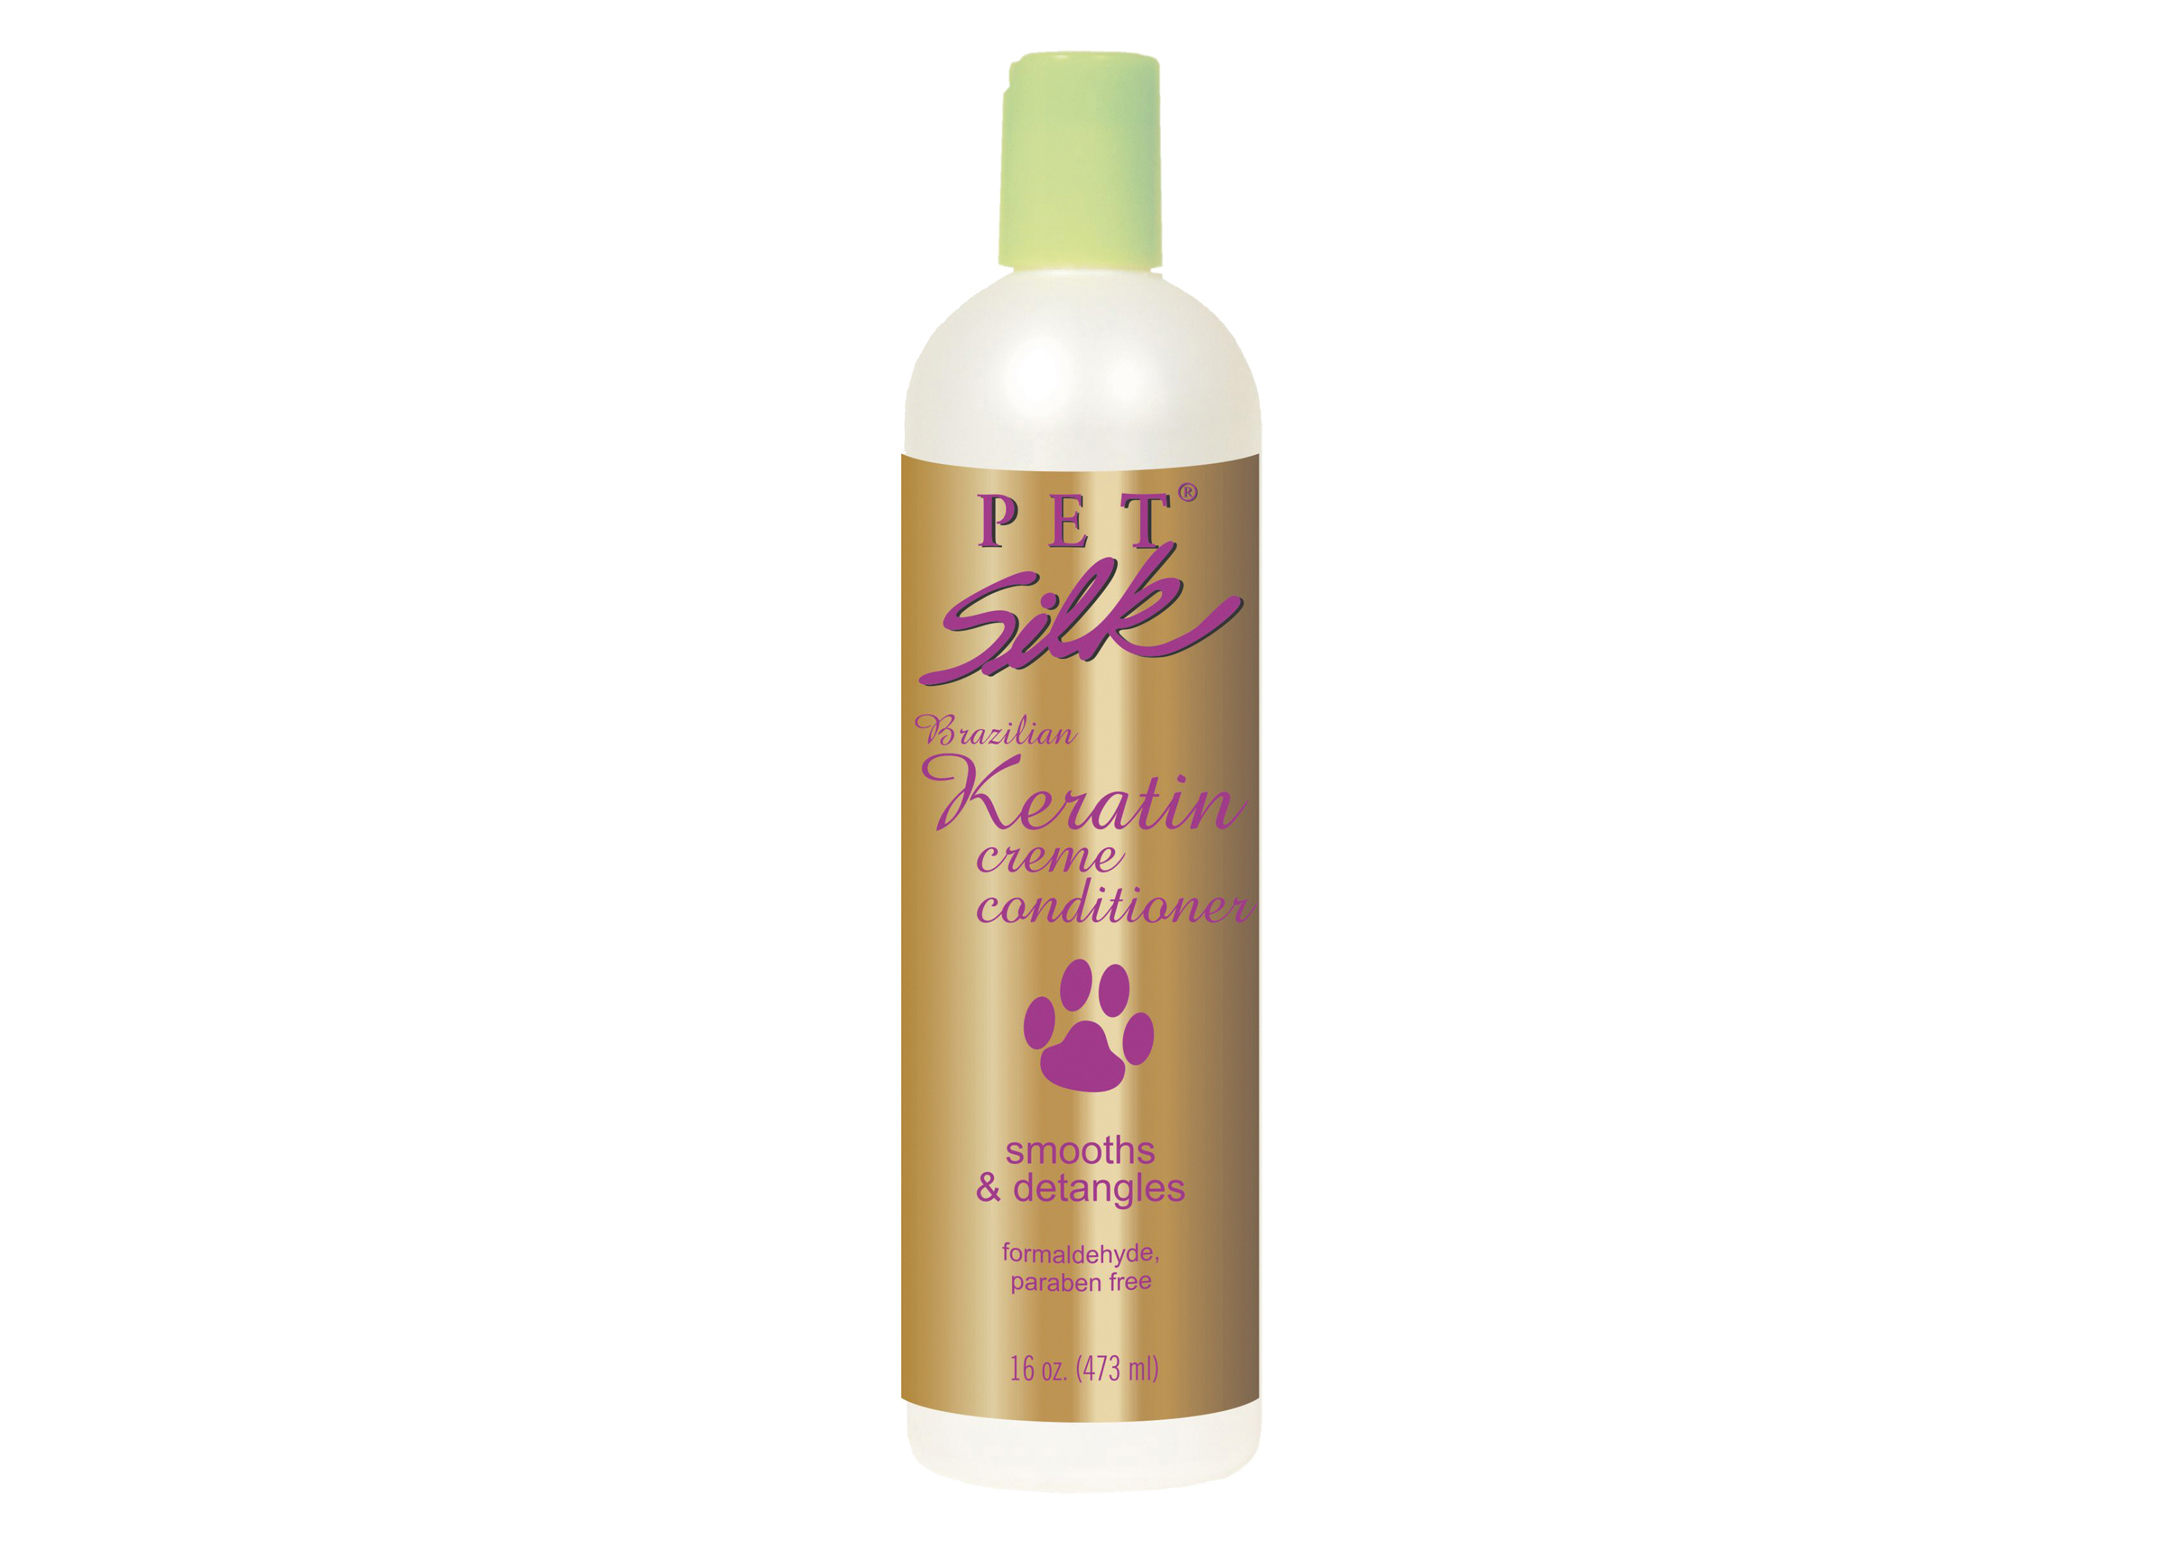 Pet Silk Brazilian Keratin 473 ml Creme Conditioner